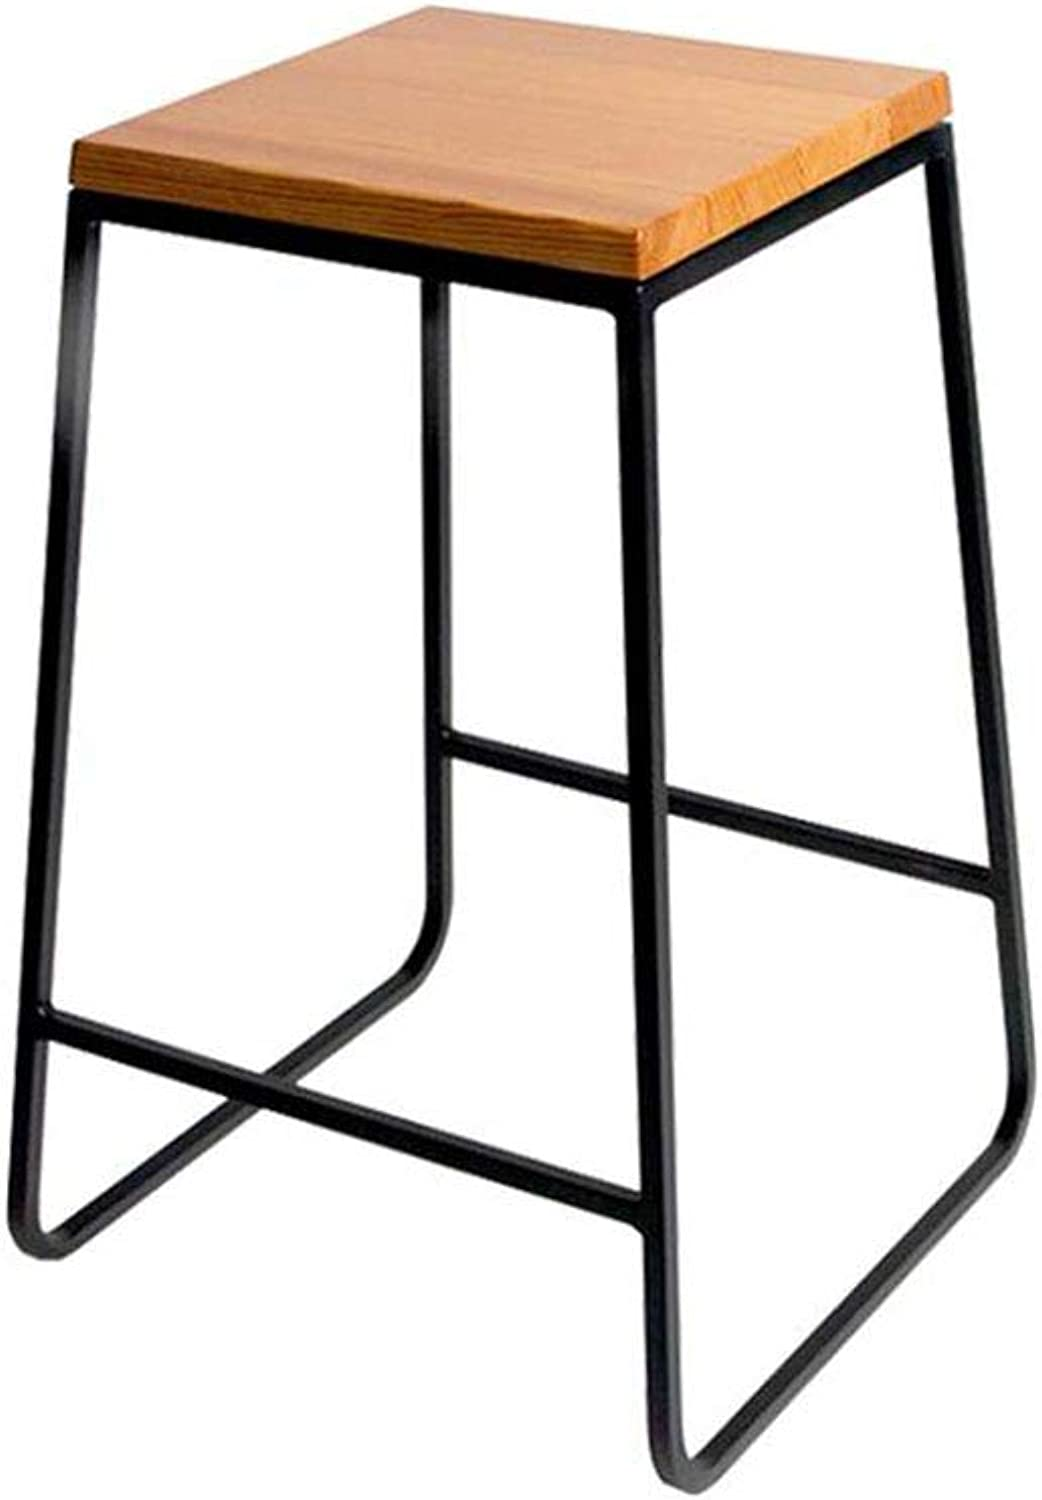 Barstools Bar stools Tall Chairs Bar Counter Breakfast Kitchen Café Metal